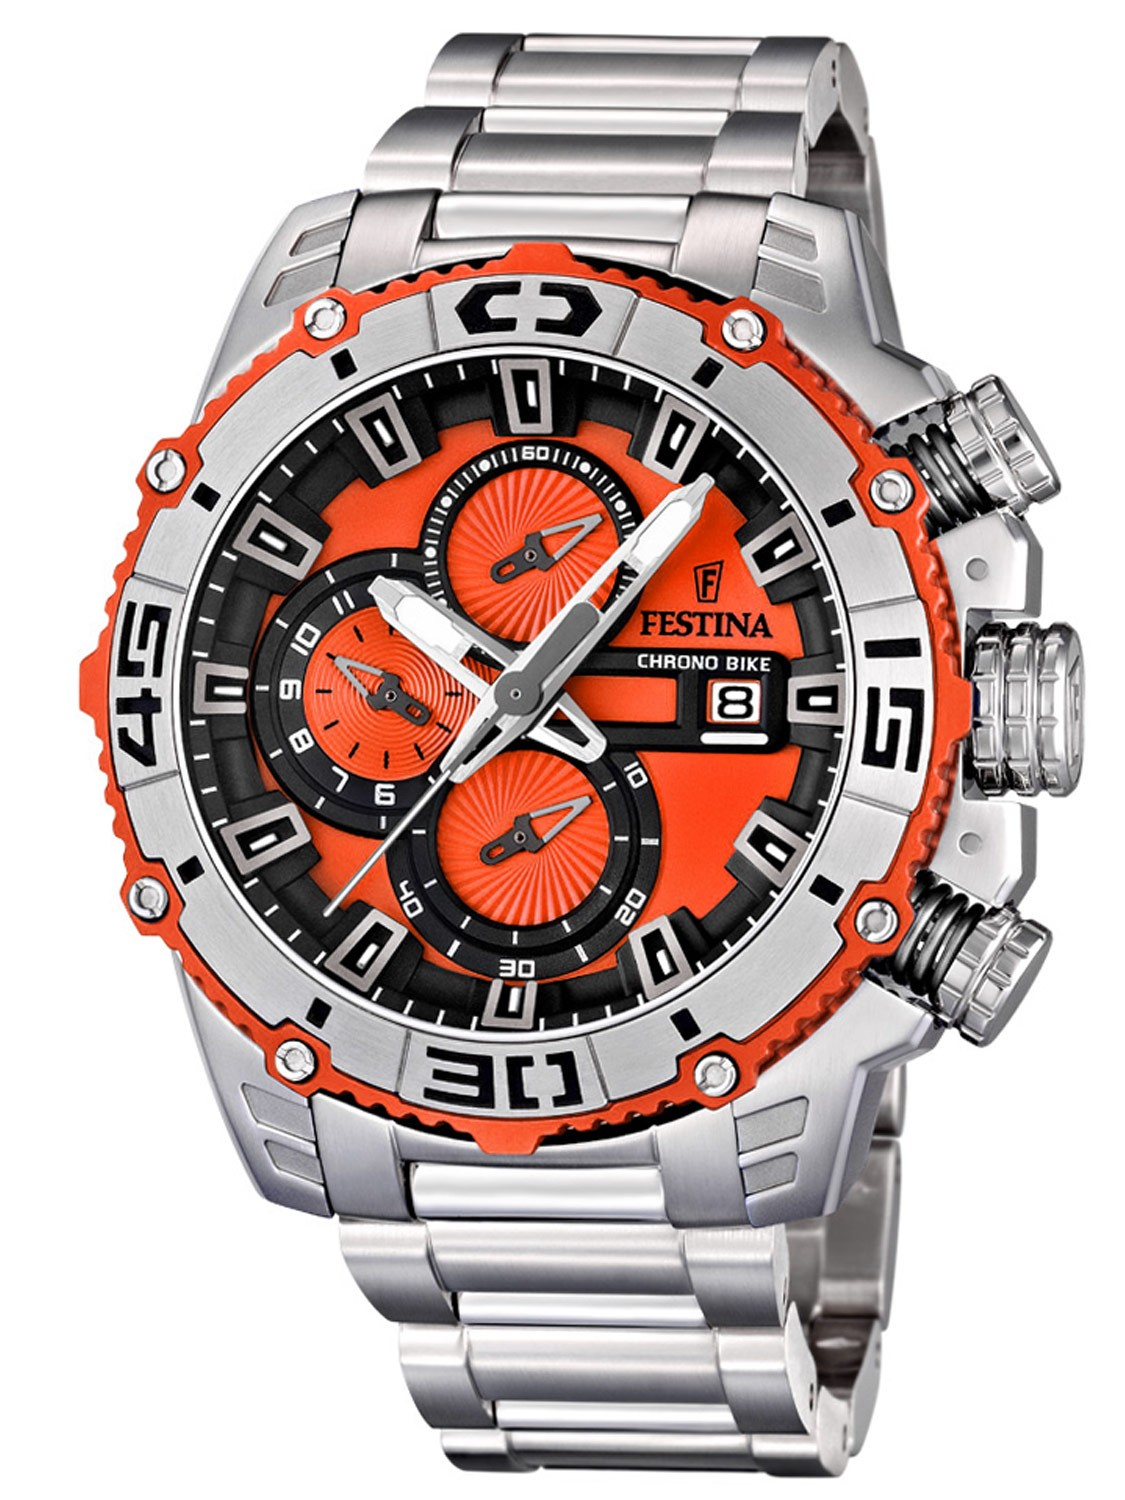 Lotus Homme Montre Lotus Orange Orange Cadran Montre Homme Cadran 45RjAL